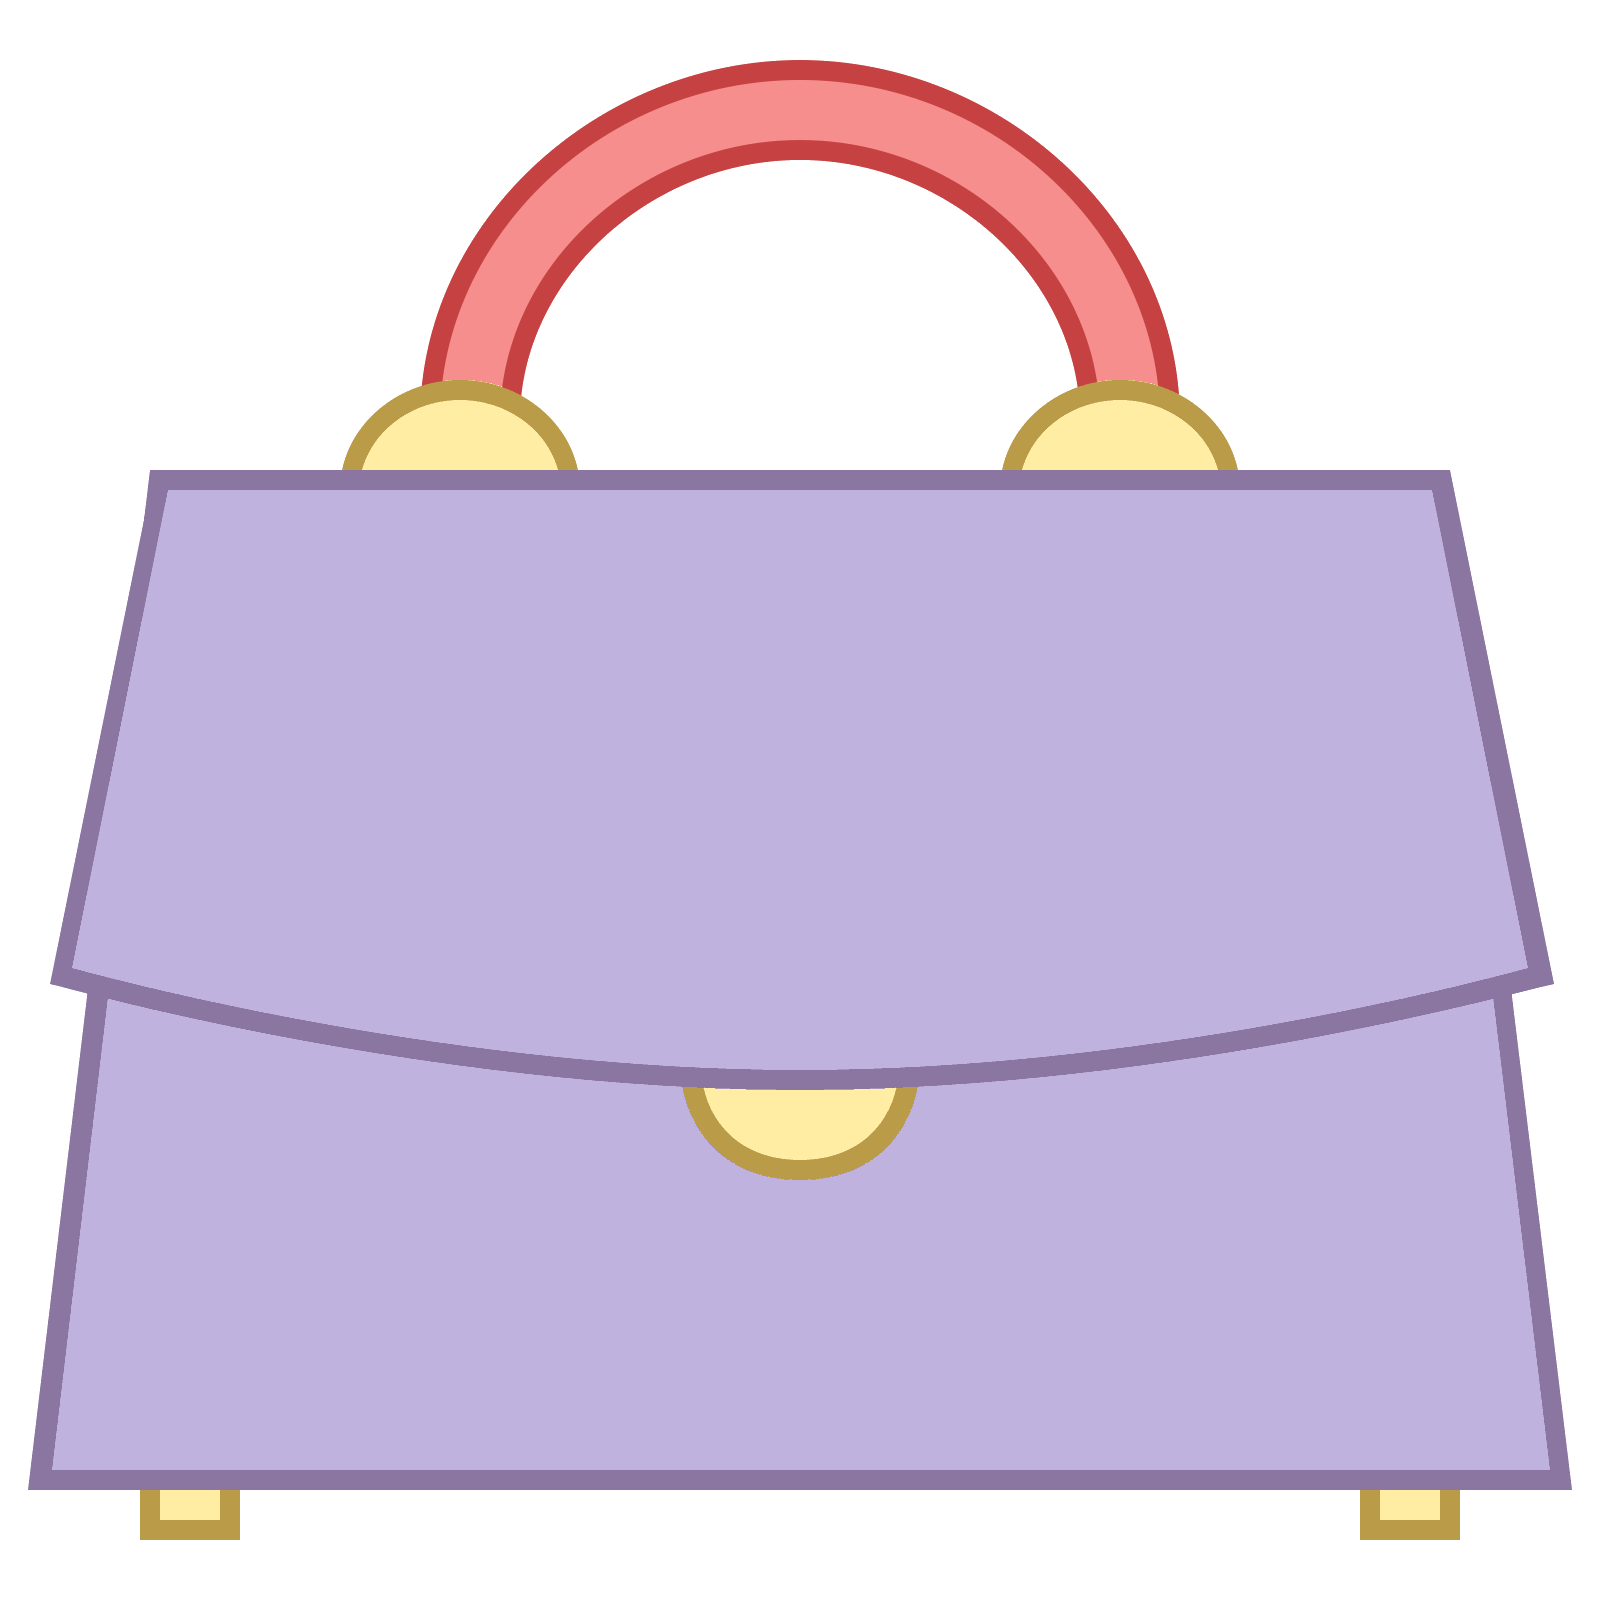 royalty free download  png icon there. Bag vector